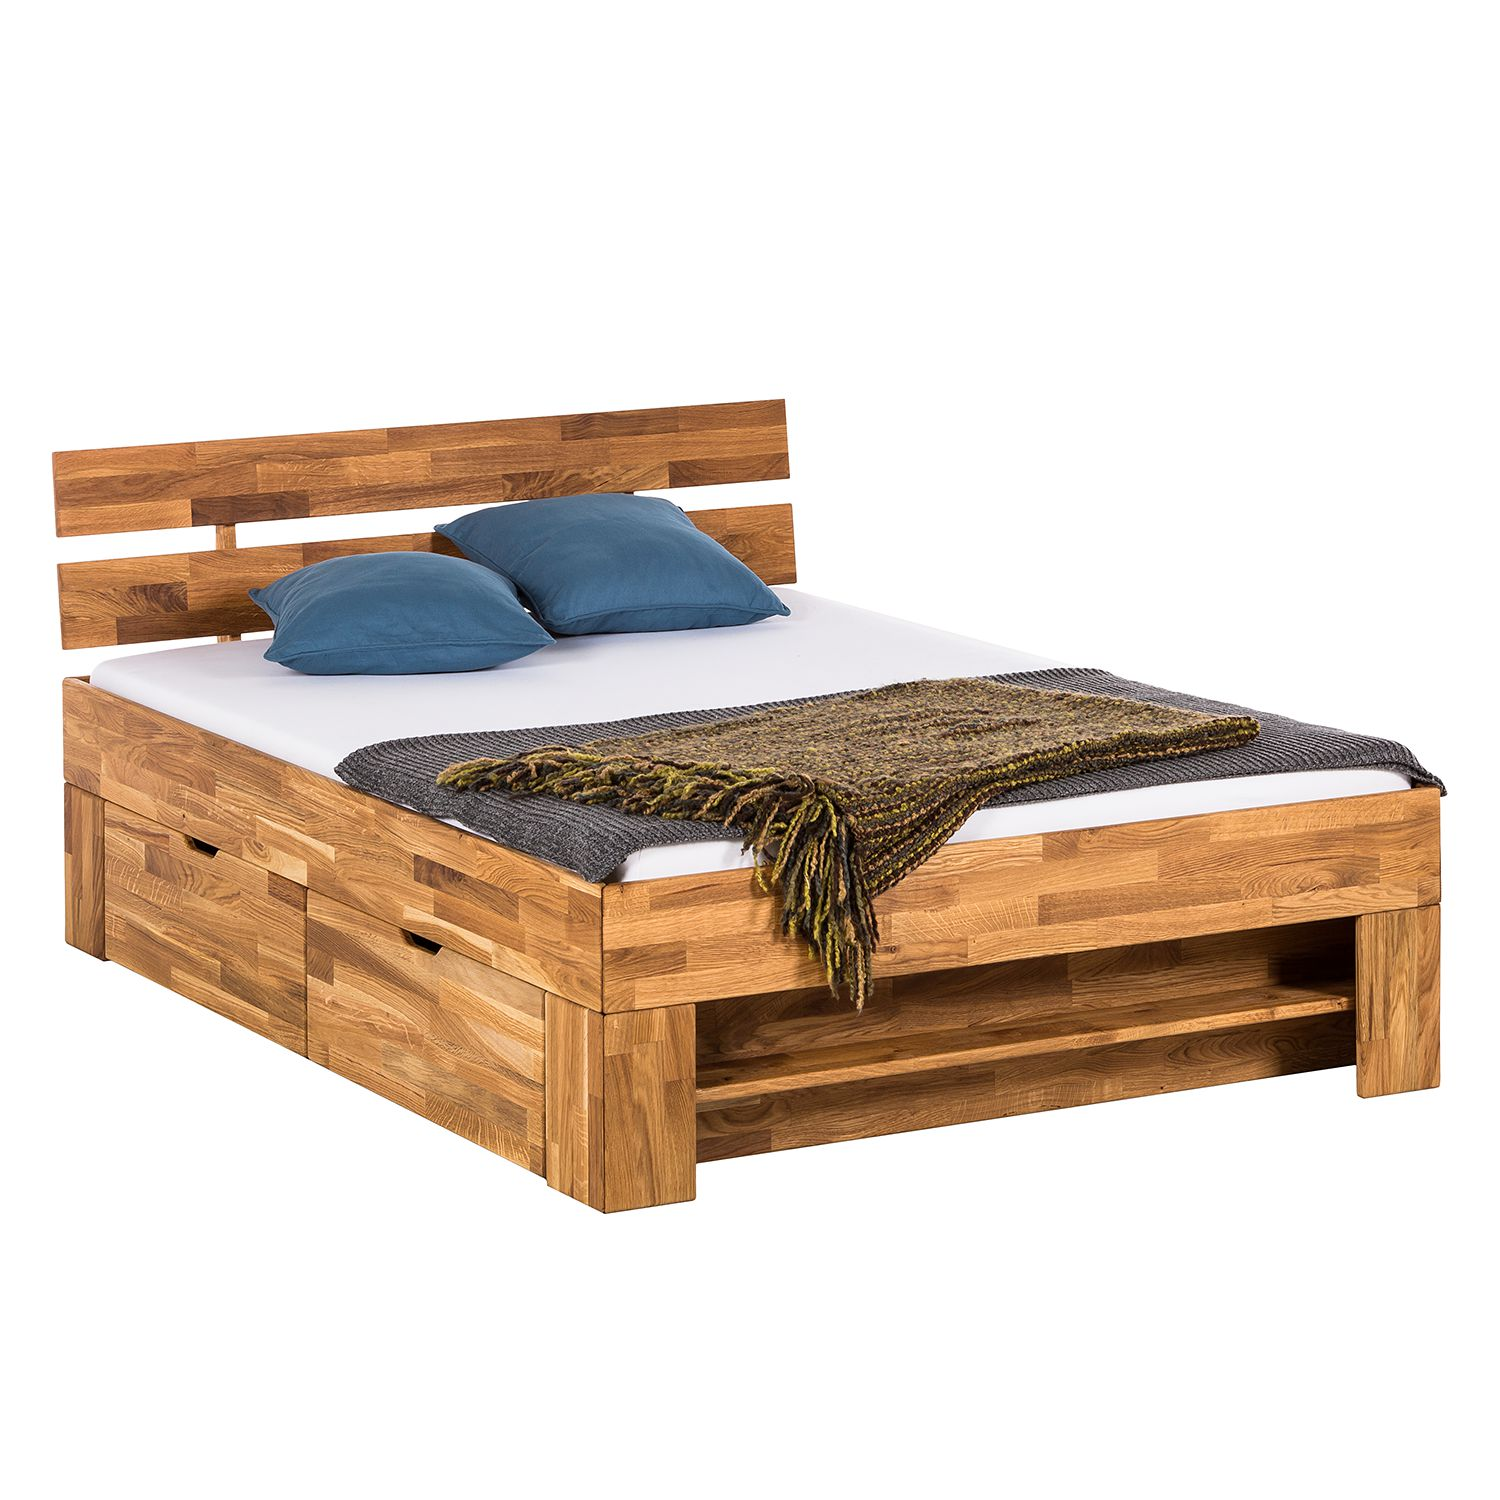 lit en bois massif eoswood avec tiroirs ch ne massif. Black Bedroom Furniture Sets. Home Design Ideas